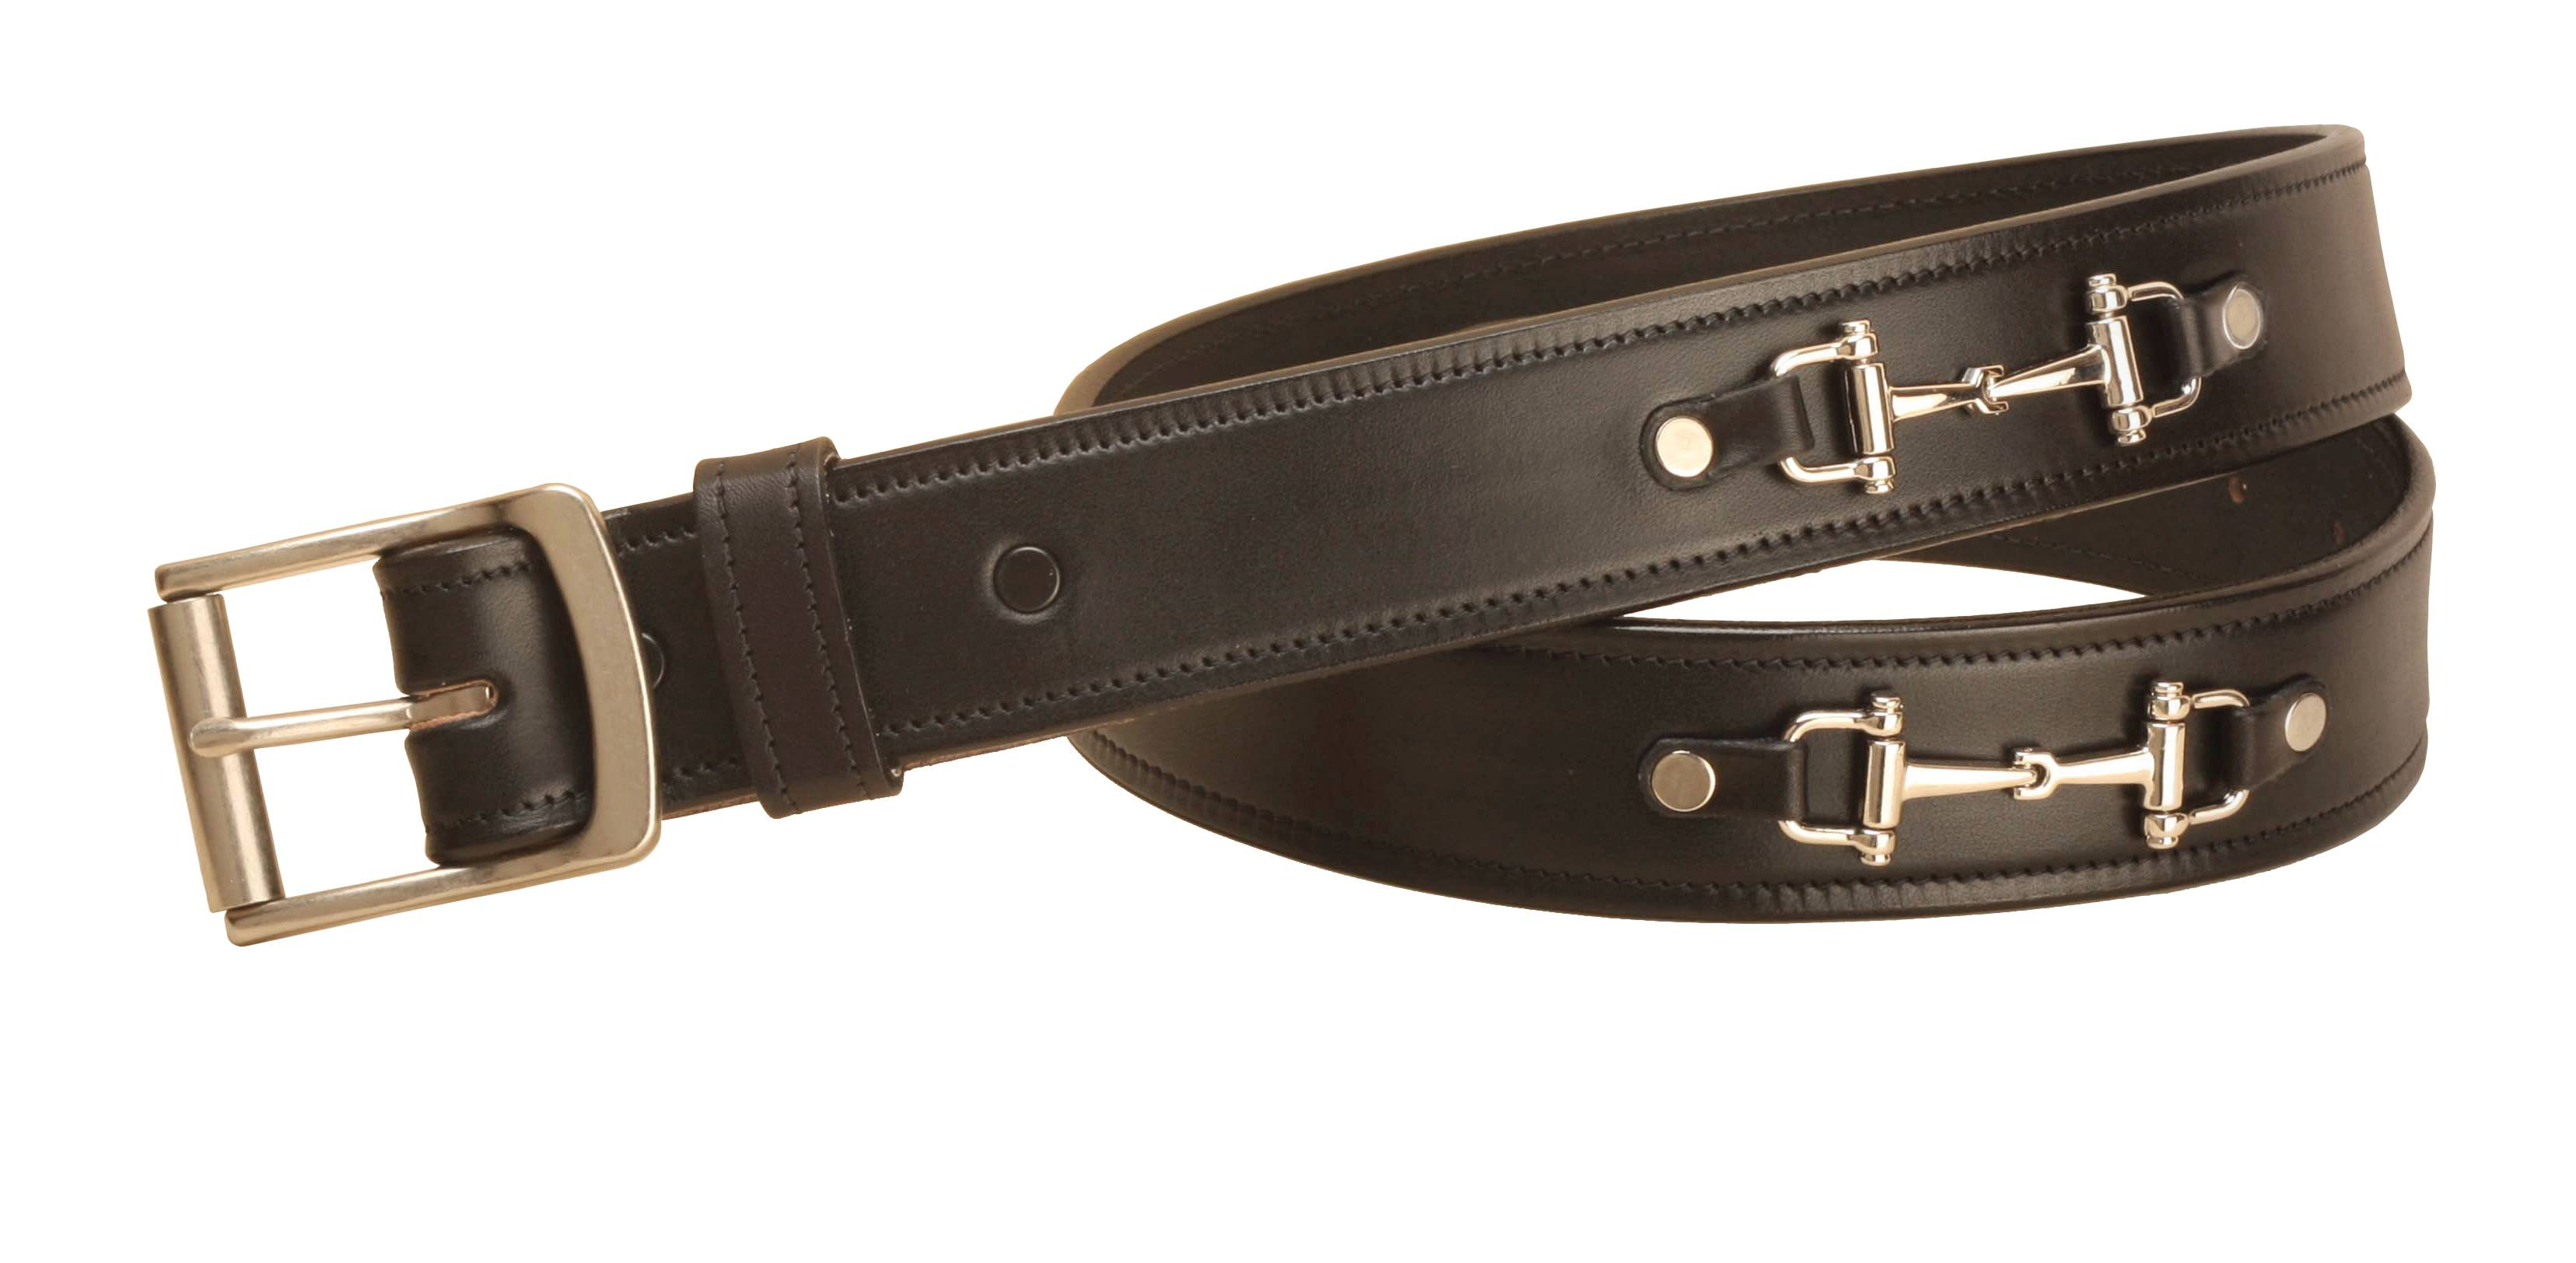 Tory Leather Nickel Snaffle Bit Leather Belt